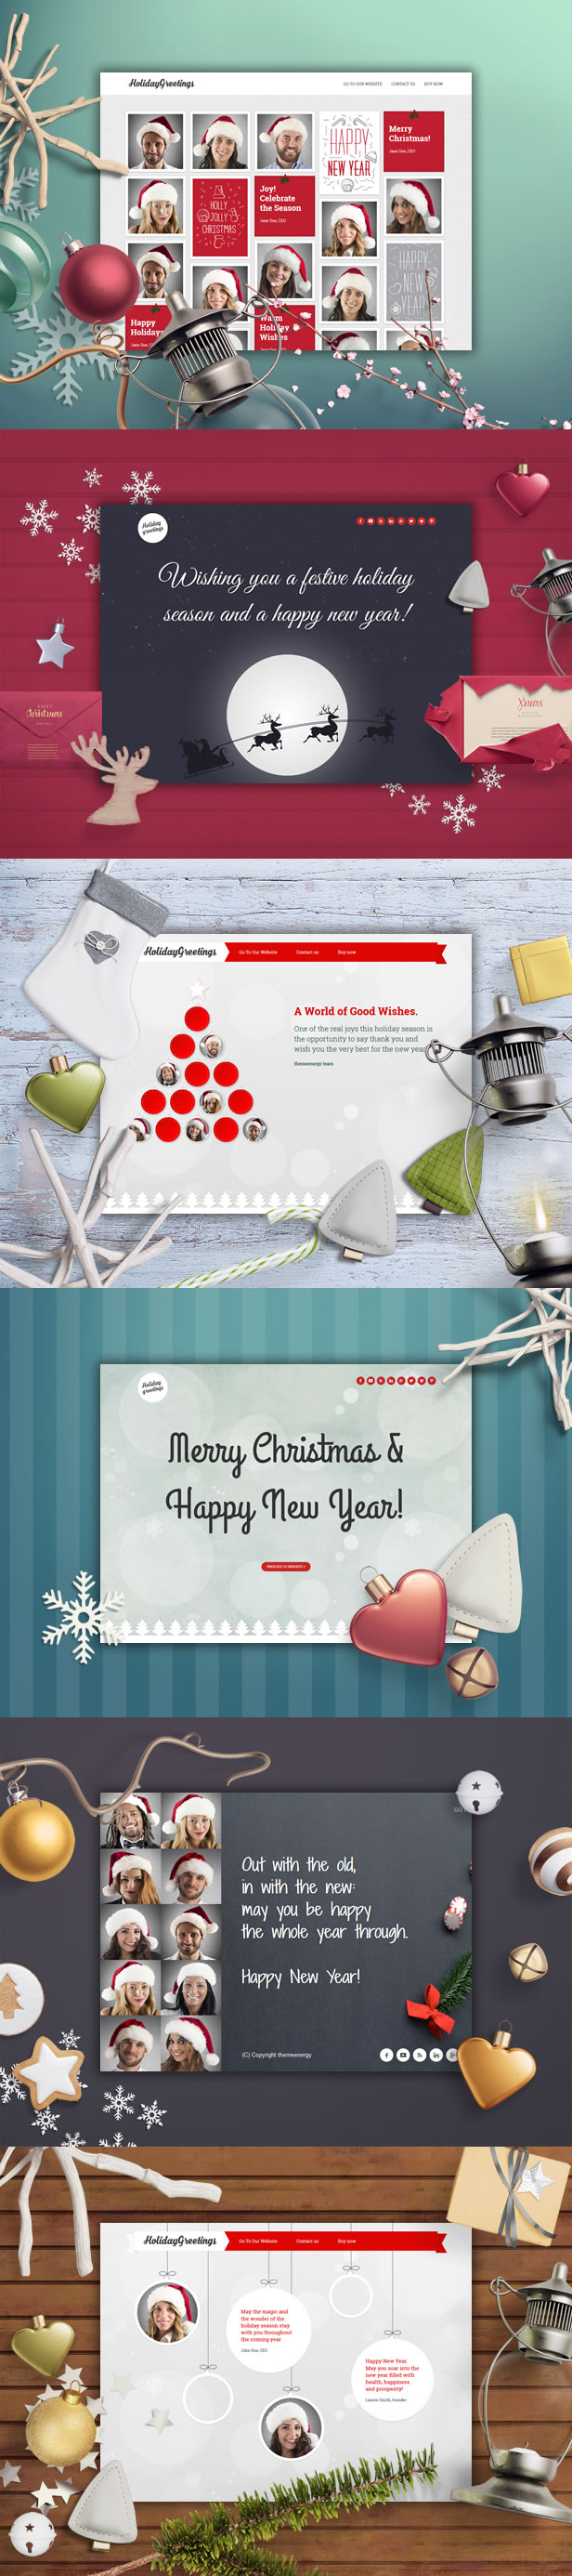 Holiday Greetings - Landing Page Greeting Card by themeenergy